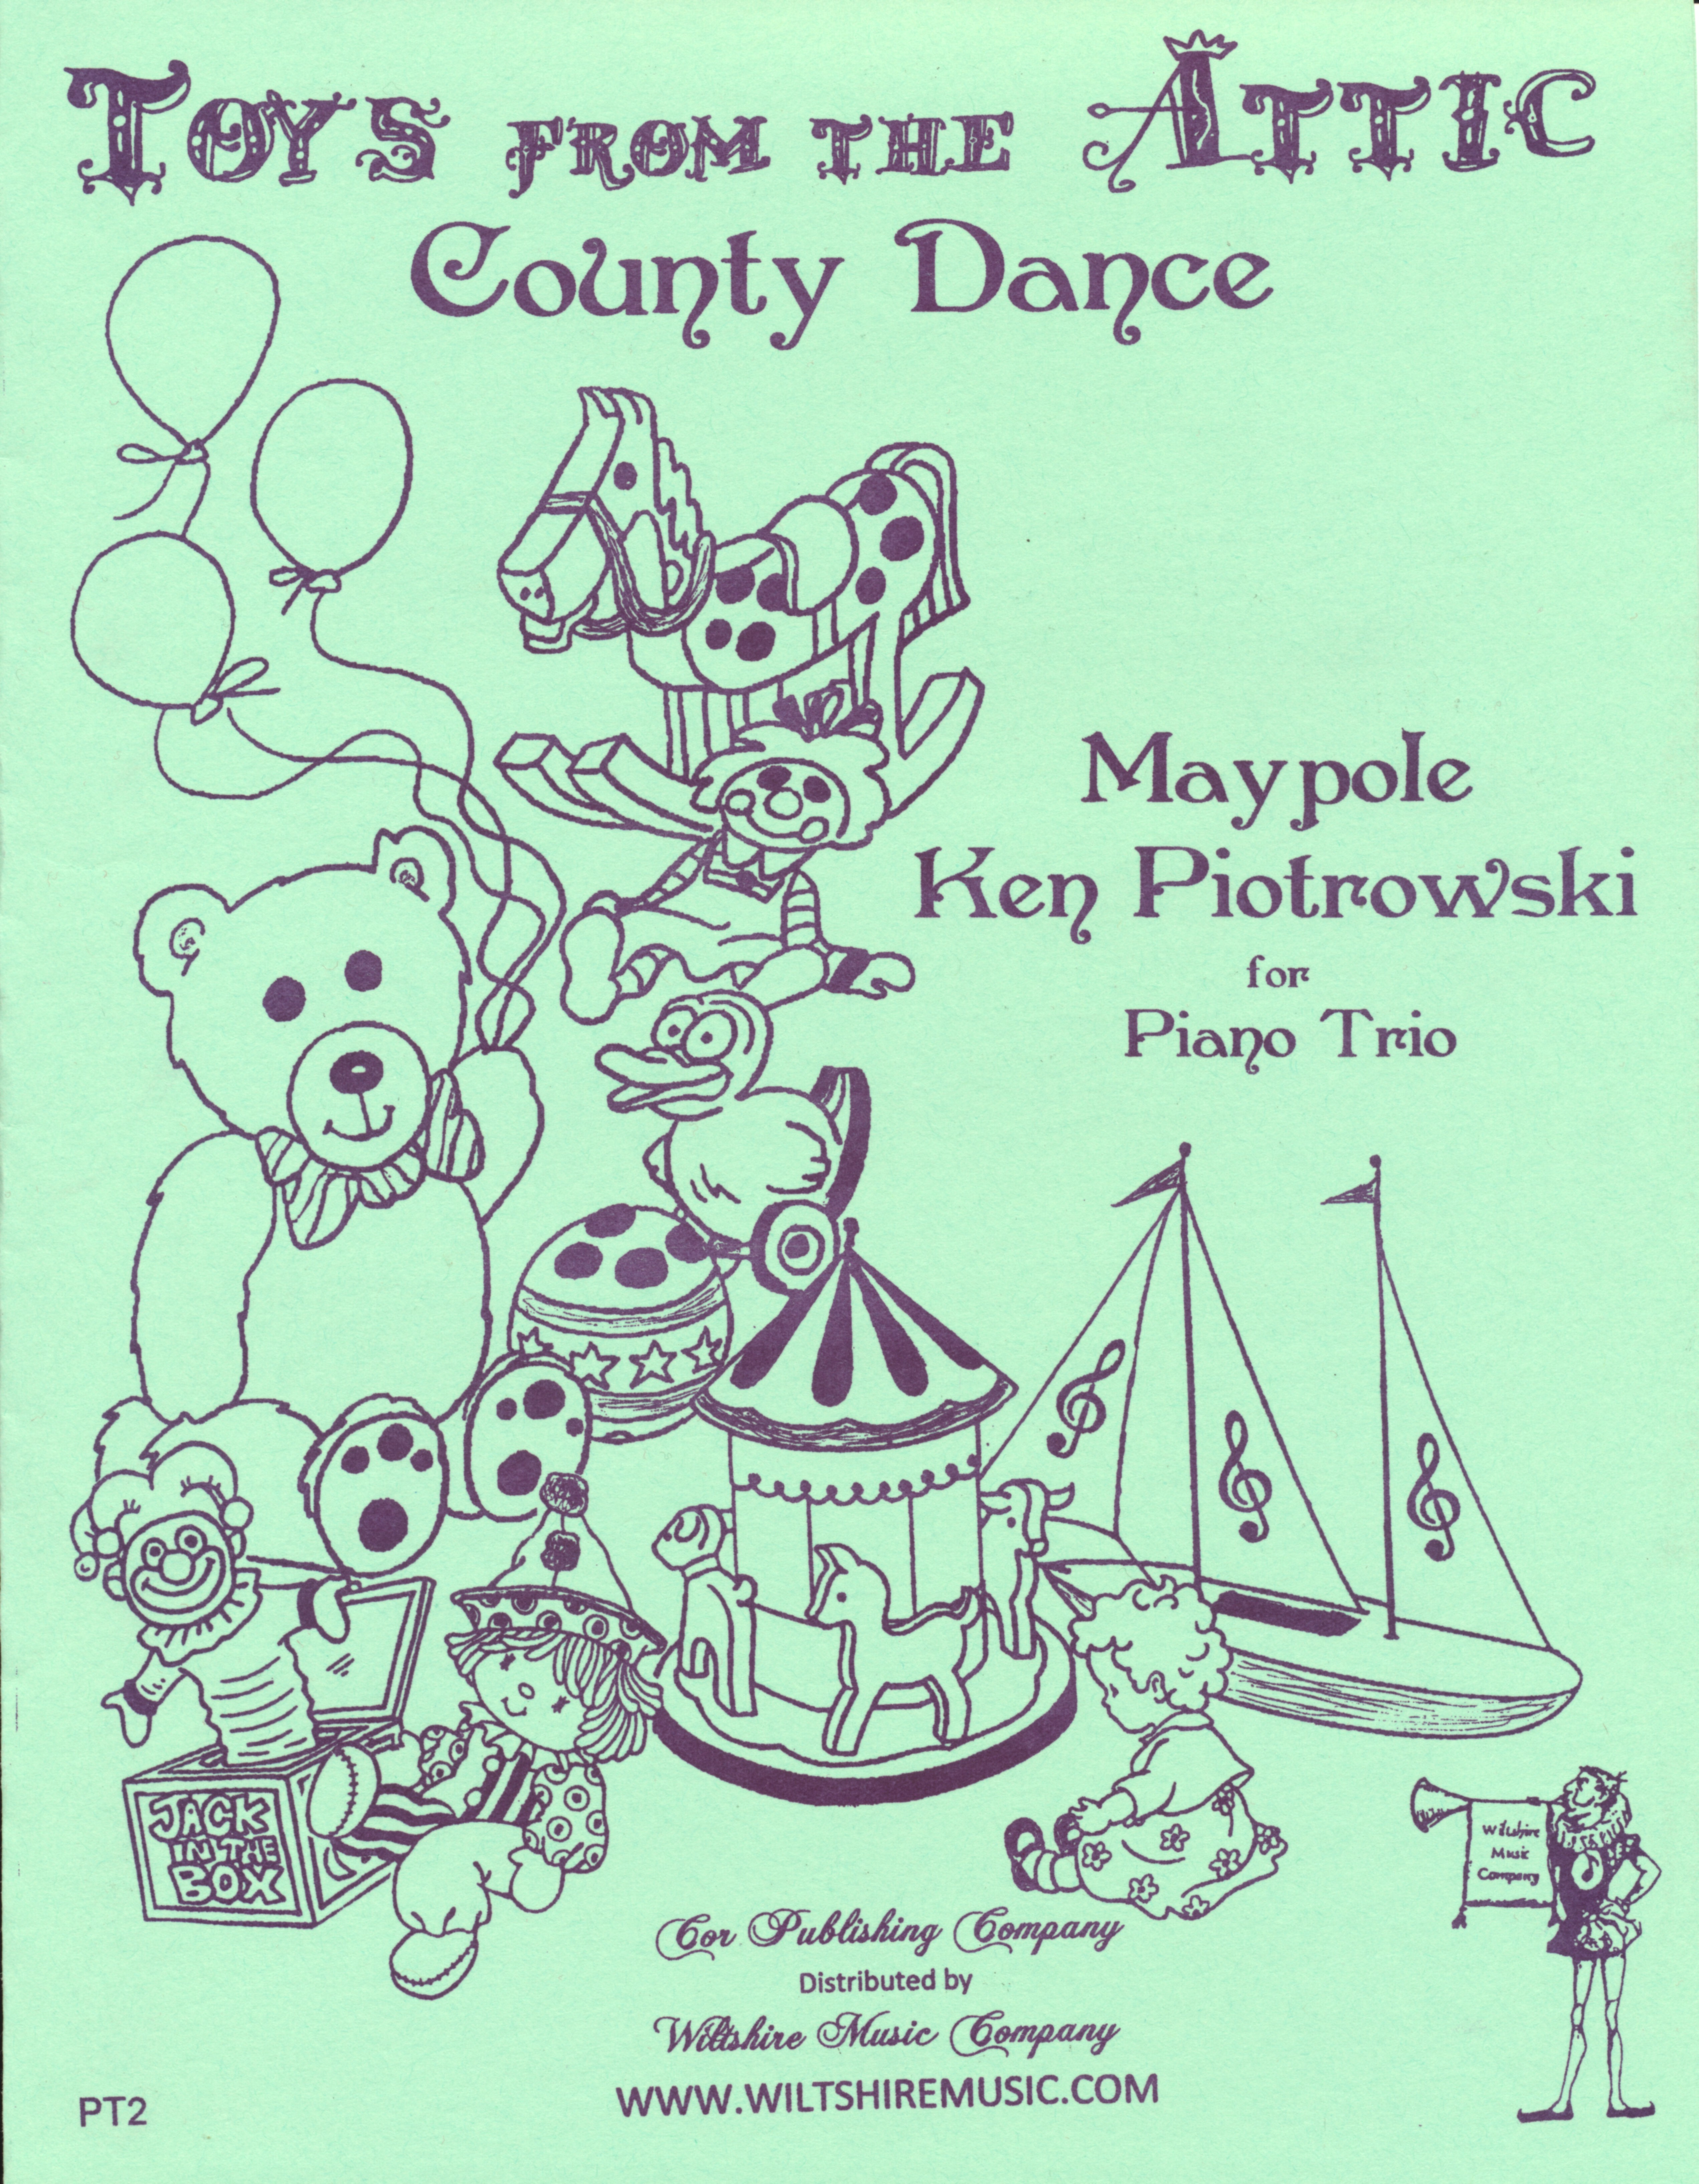 County Dance, Maypole, Ken Piotrowski, for Piano Trio